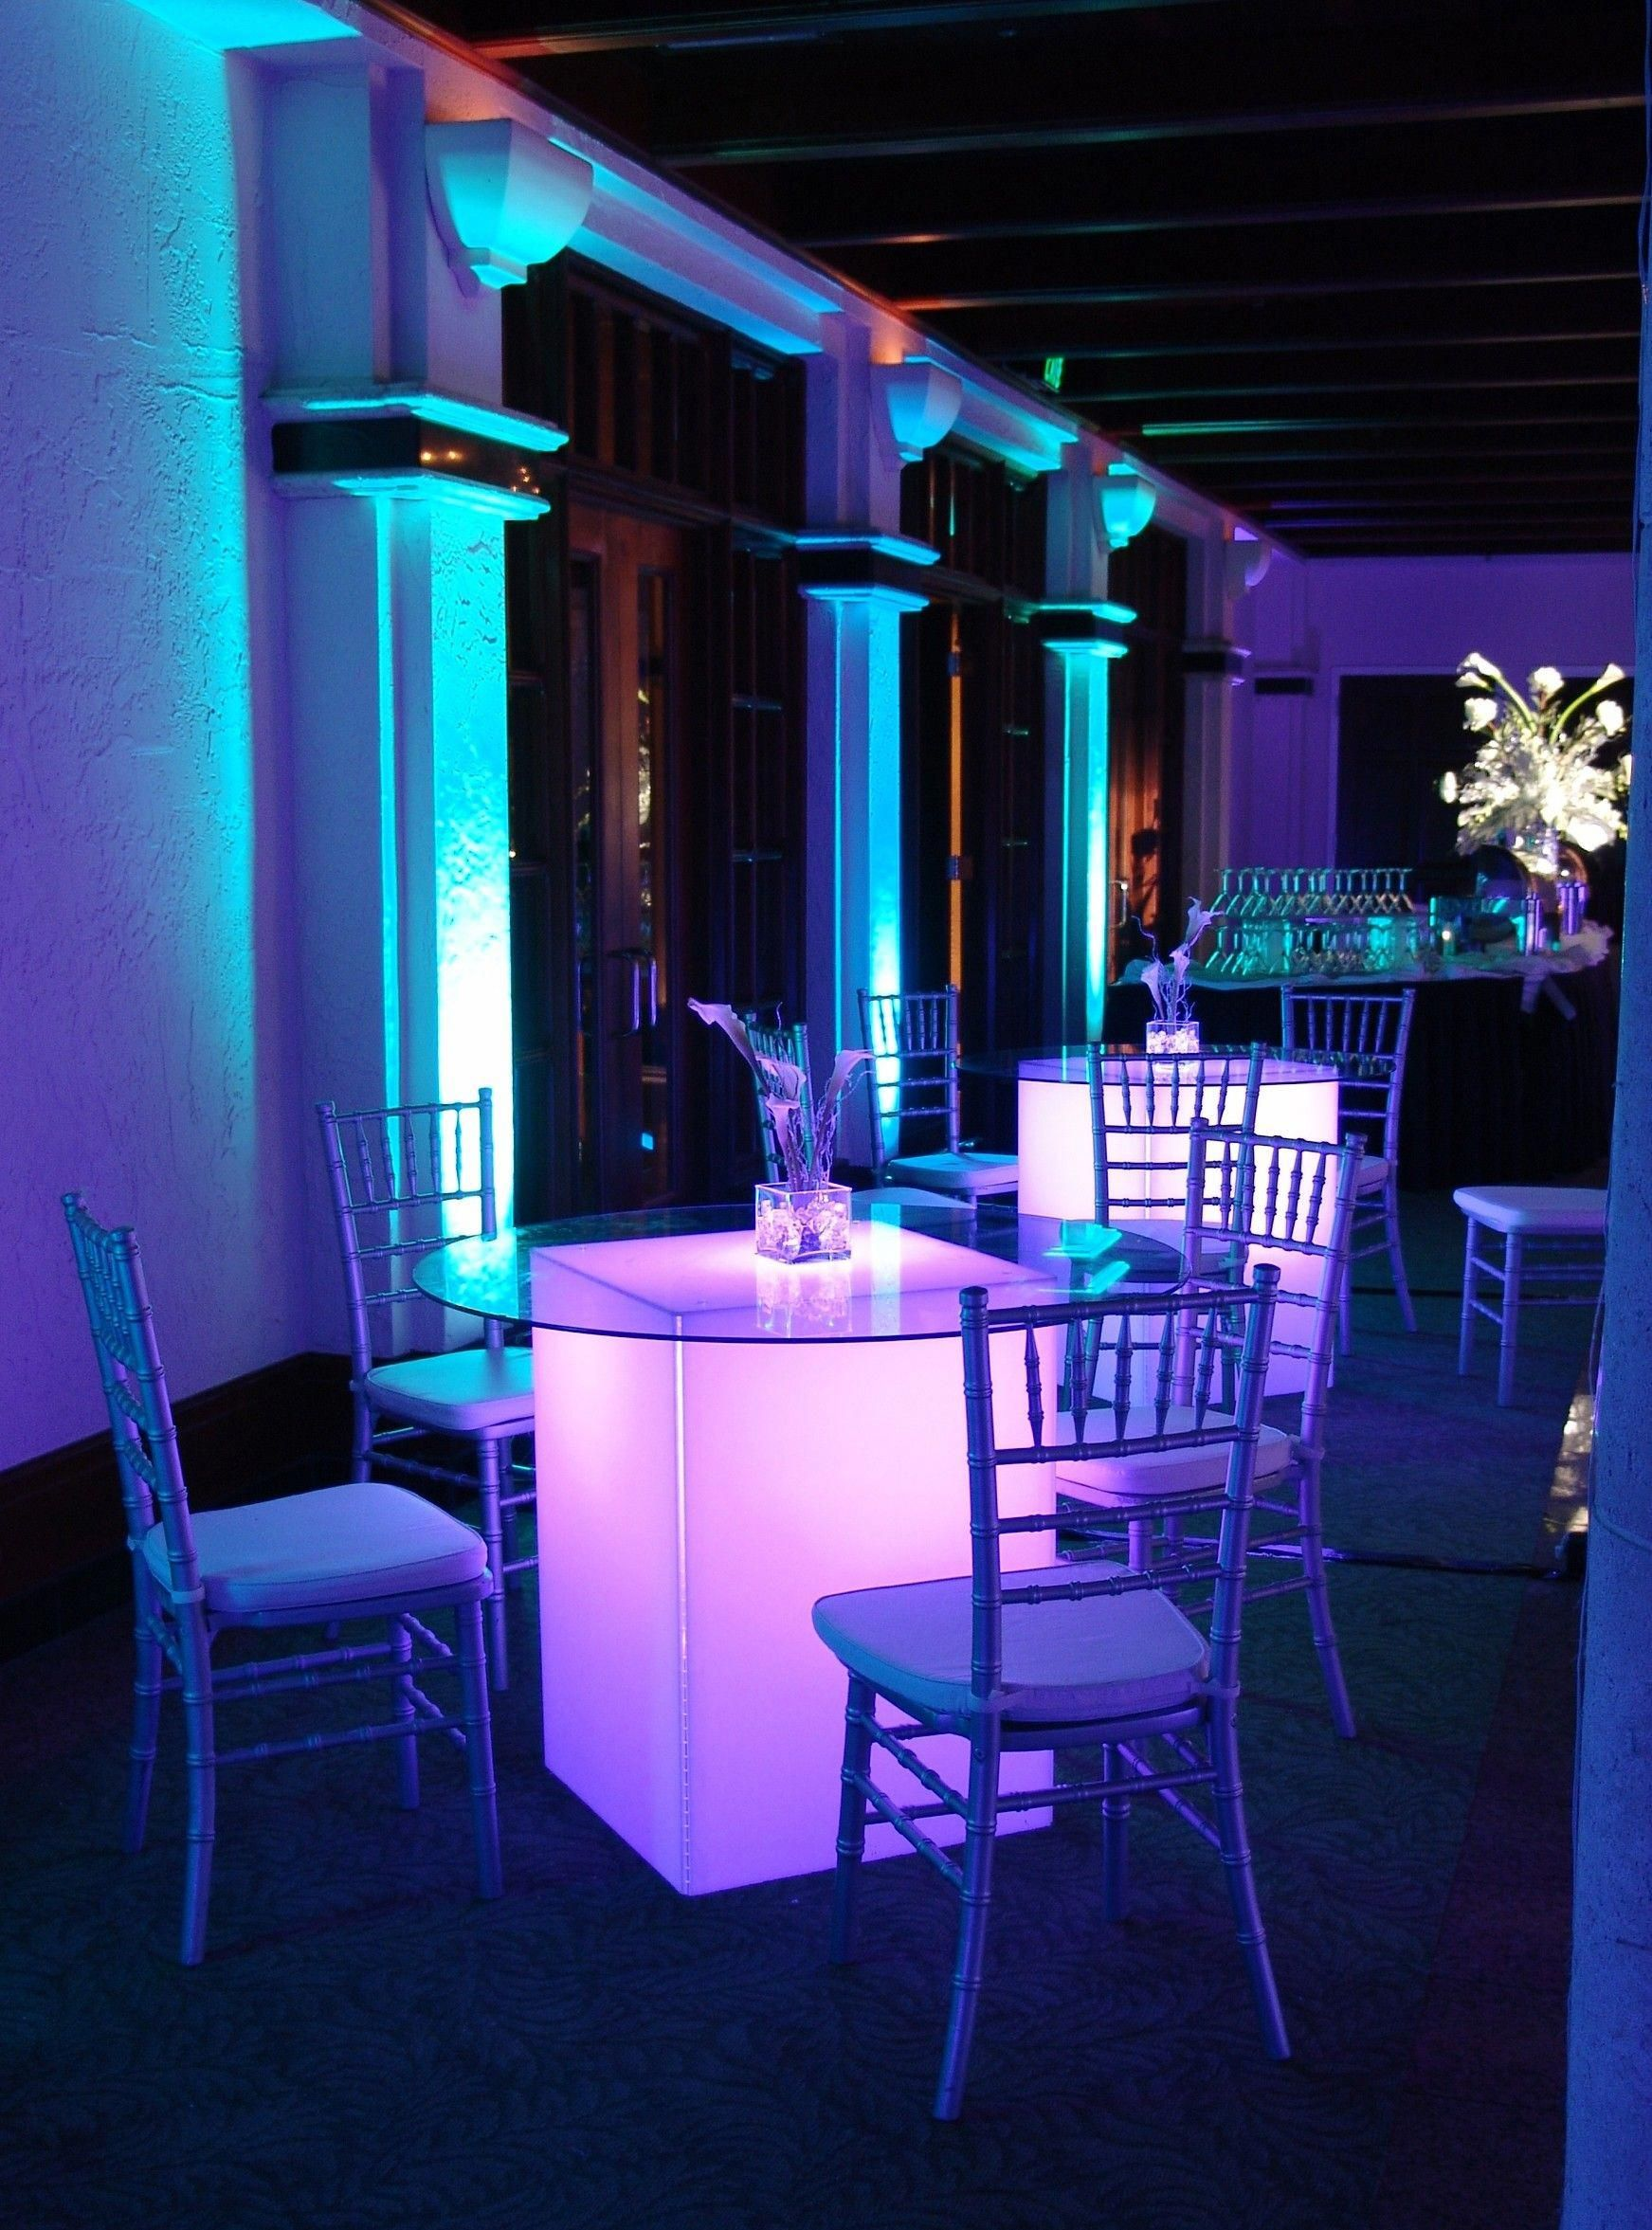 Love This Led Decor For A Bar Bat Mitzvah Or Wedding Tail Area Eventplanner